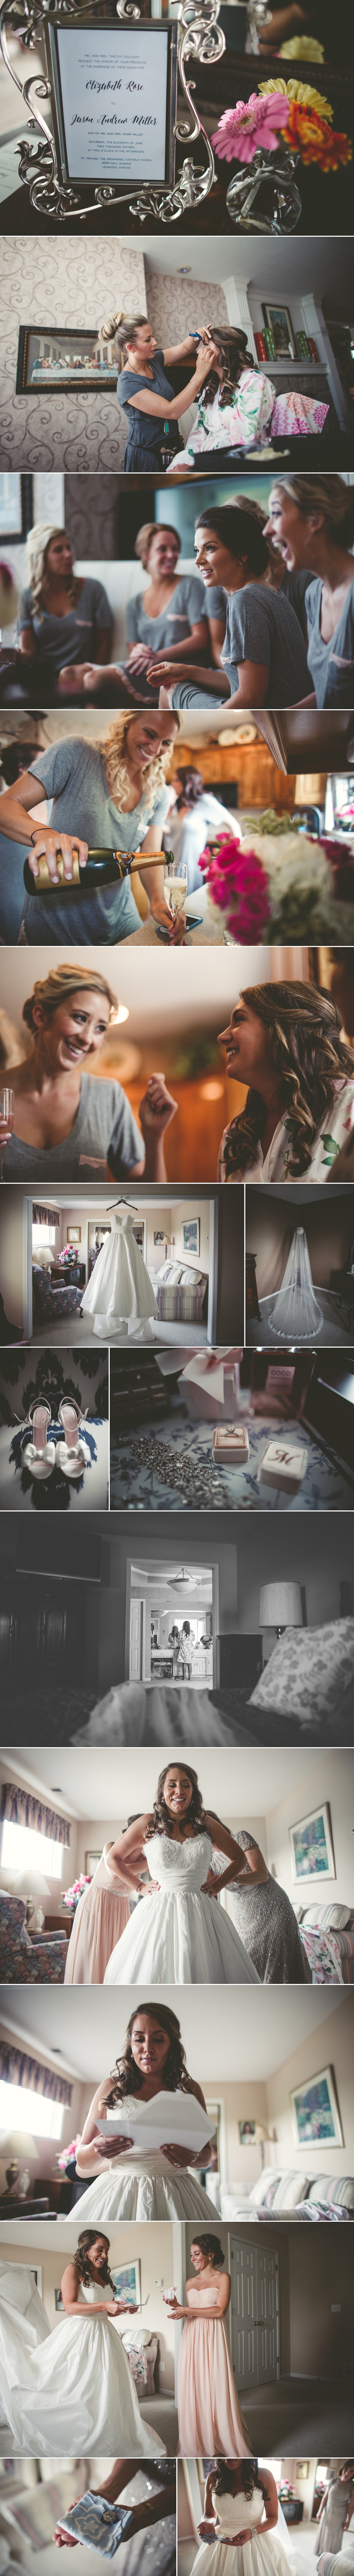 jason_domingues_photography_best_kansas_city_wedding_photographer_kc_carriage_club_1